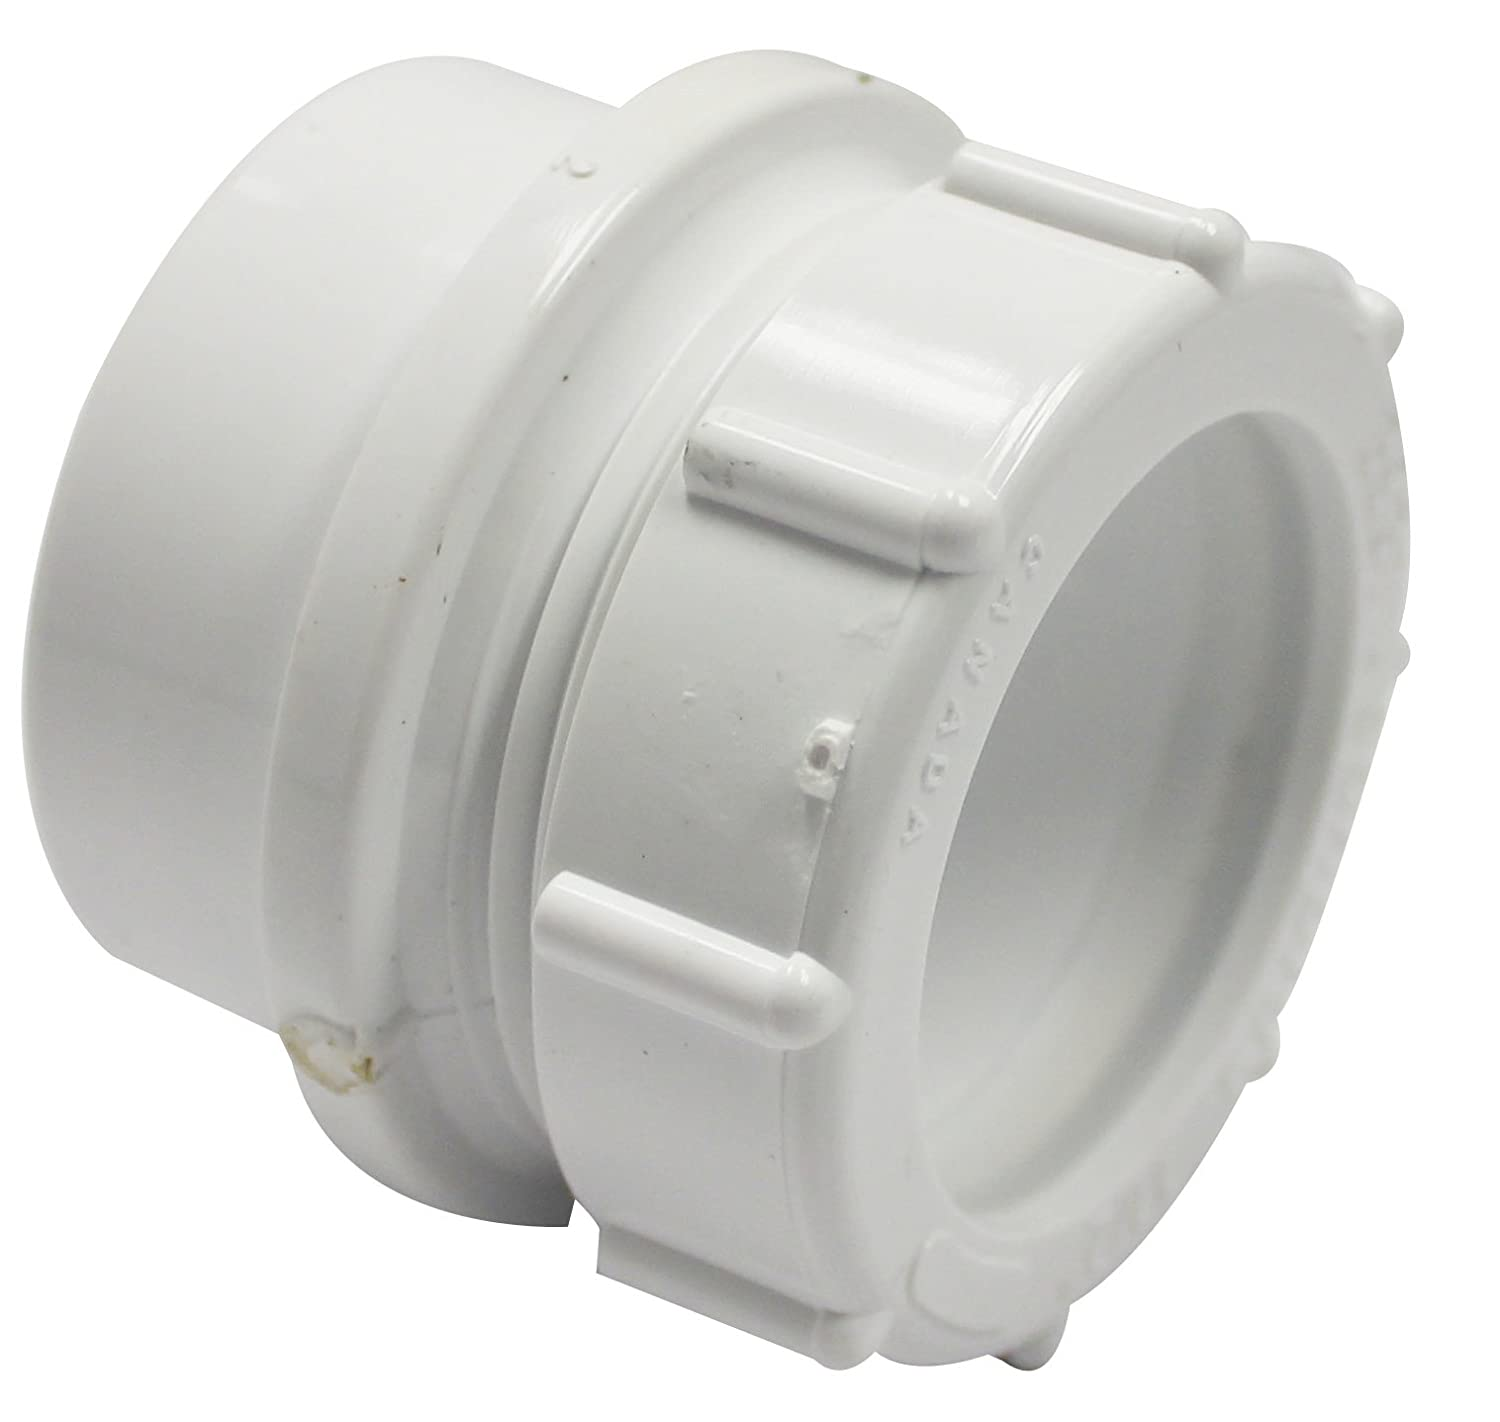 White 1.5-Feet Canplas 192801A PVC DWV Trap Adapter with Washer